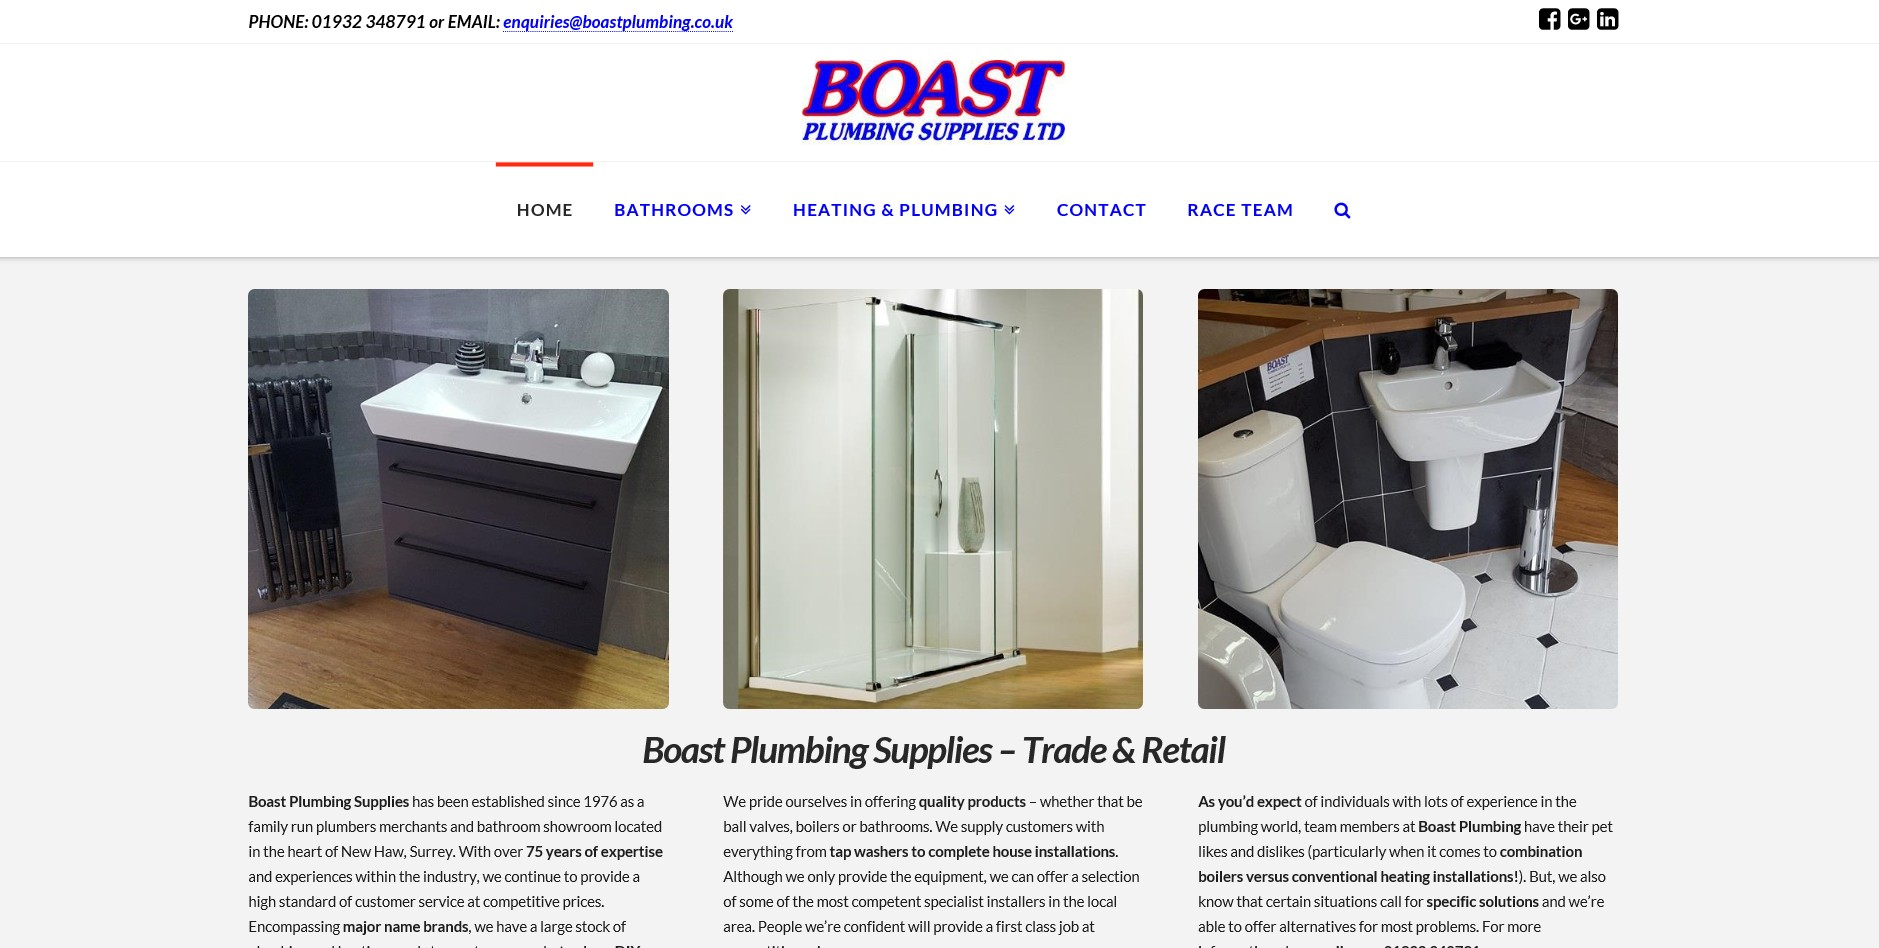 Website for Boast Plumbing